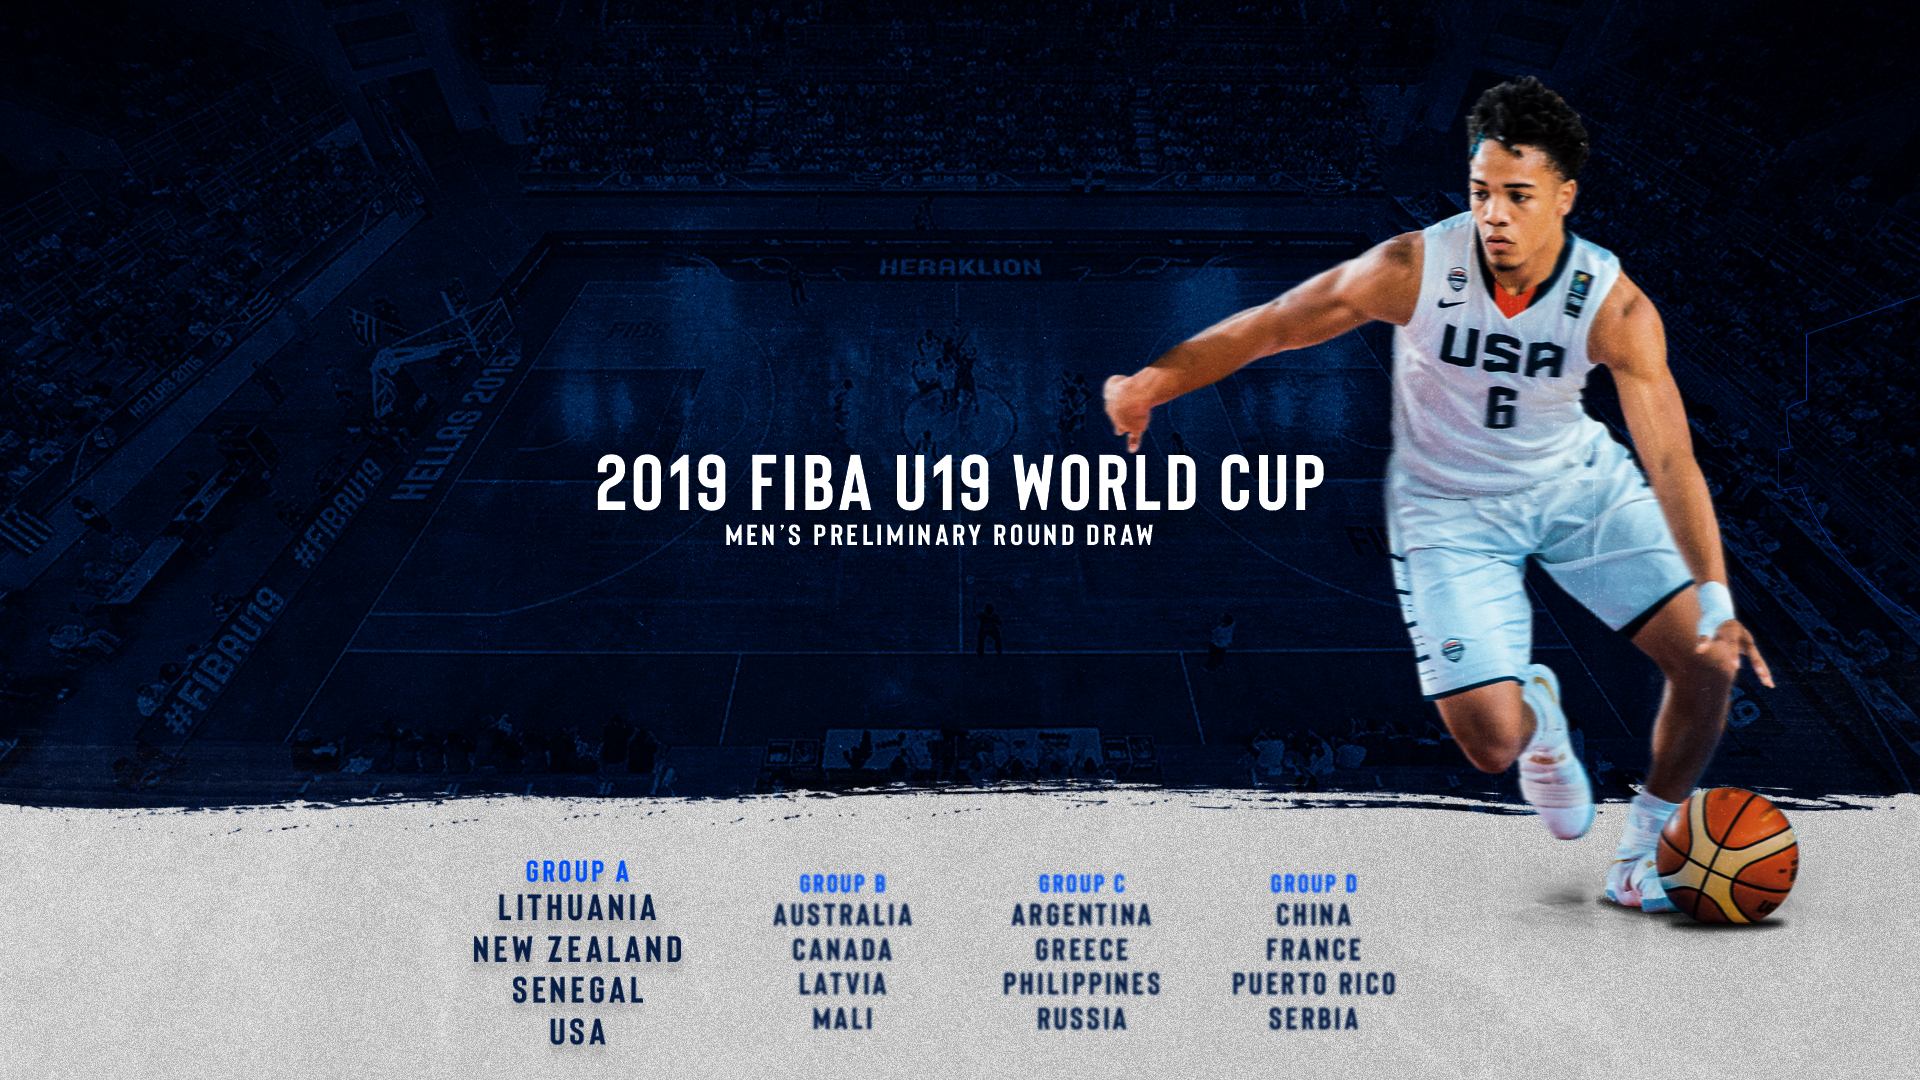 USA Basketball 2019 MU19 Draw